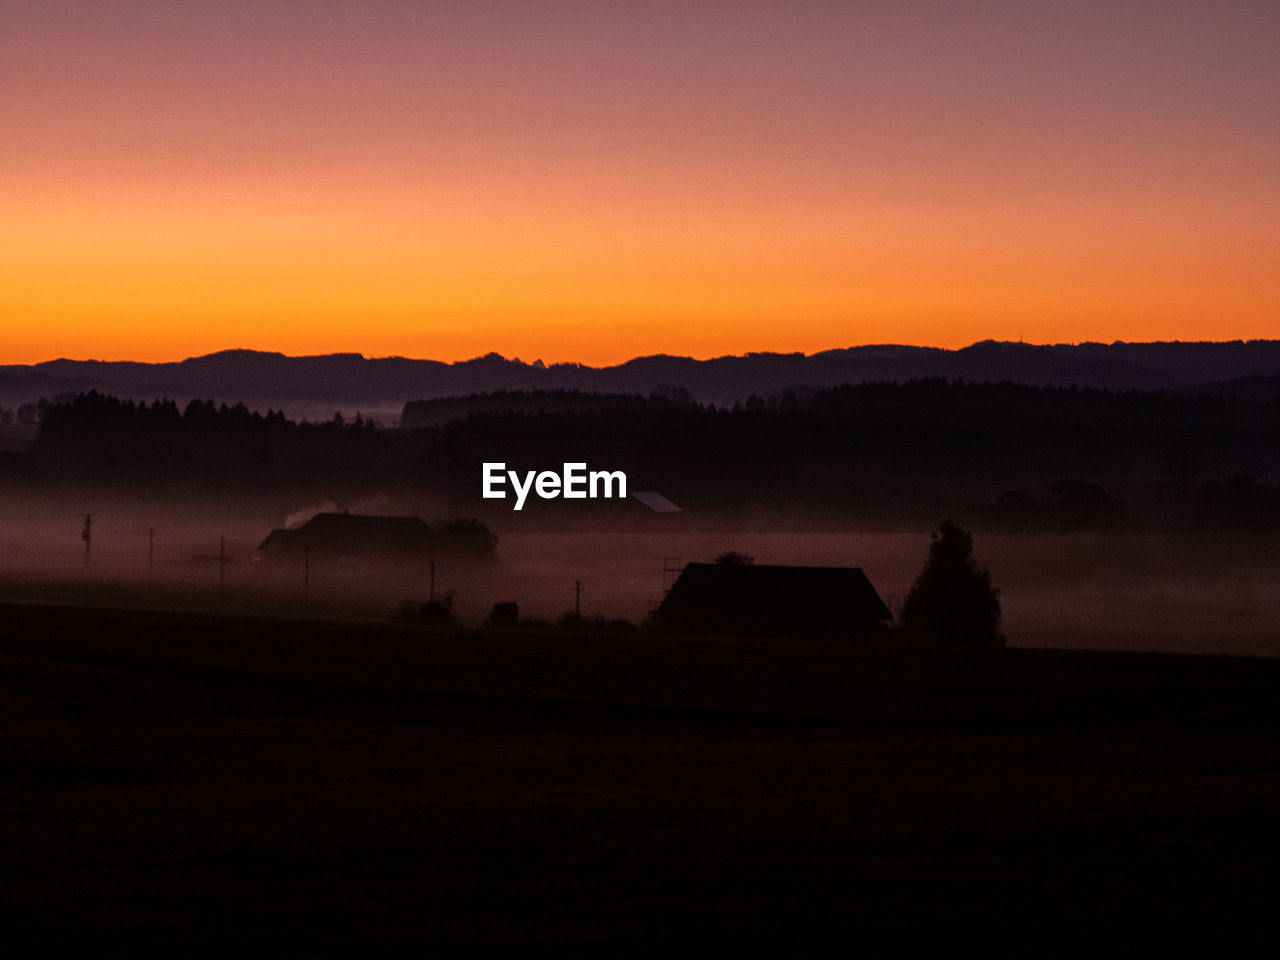 sky, beauty in nature, scenics - nature, tranquil scene, tranquility, sunset, orange color, landscape, environment, no people, silhouette, copy space, non-urban scene, nature, idyllic, clear sky, mountain, outdoors, land, hazy